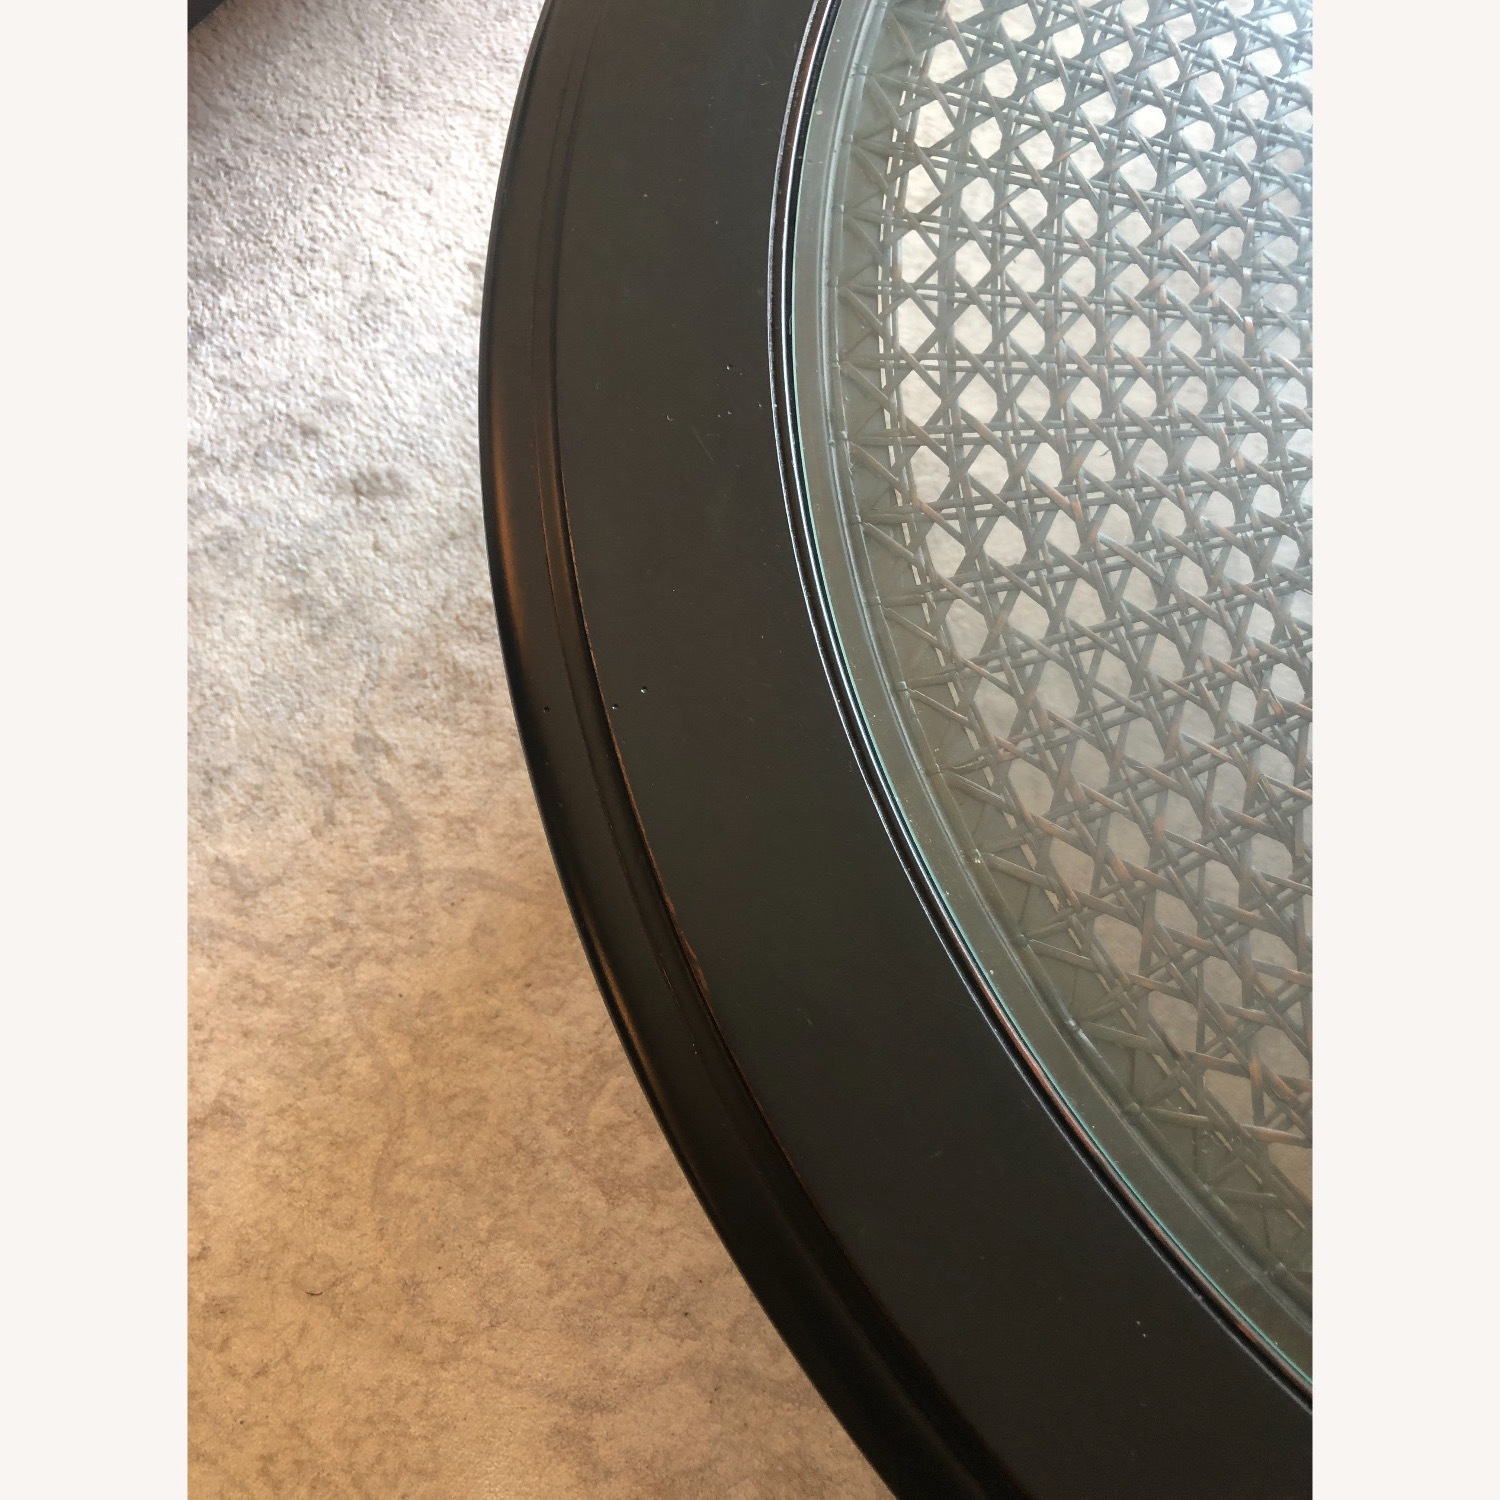 Ethan Allen Maya Round Coffee Table in Peppercorn - image-2